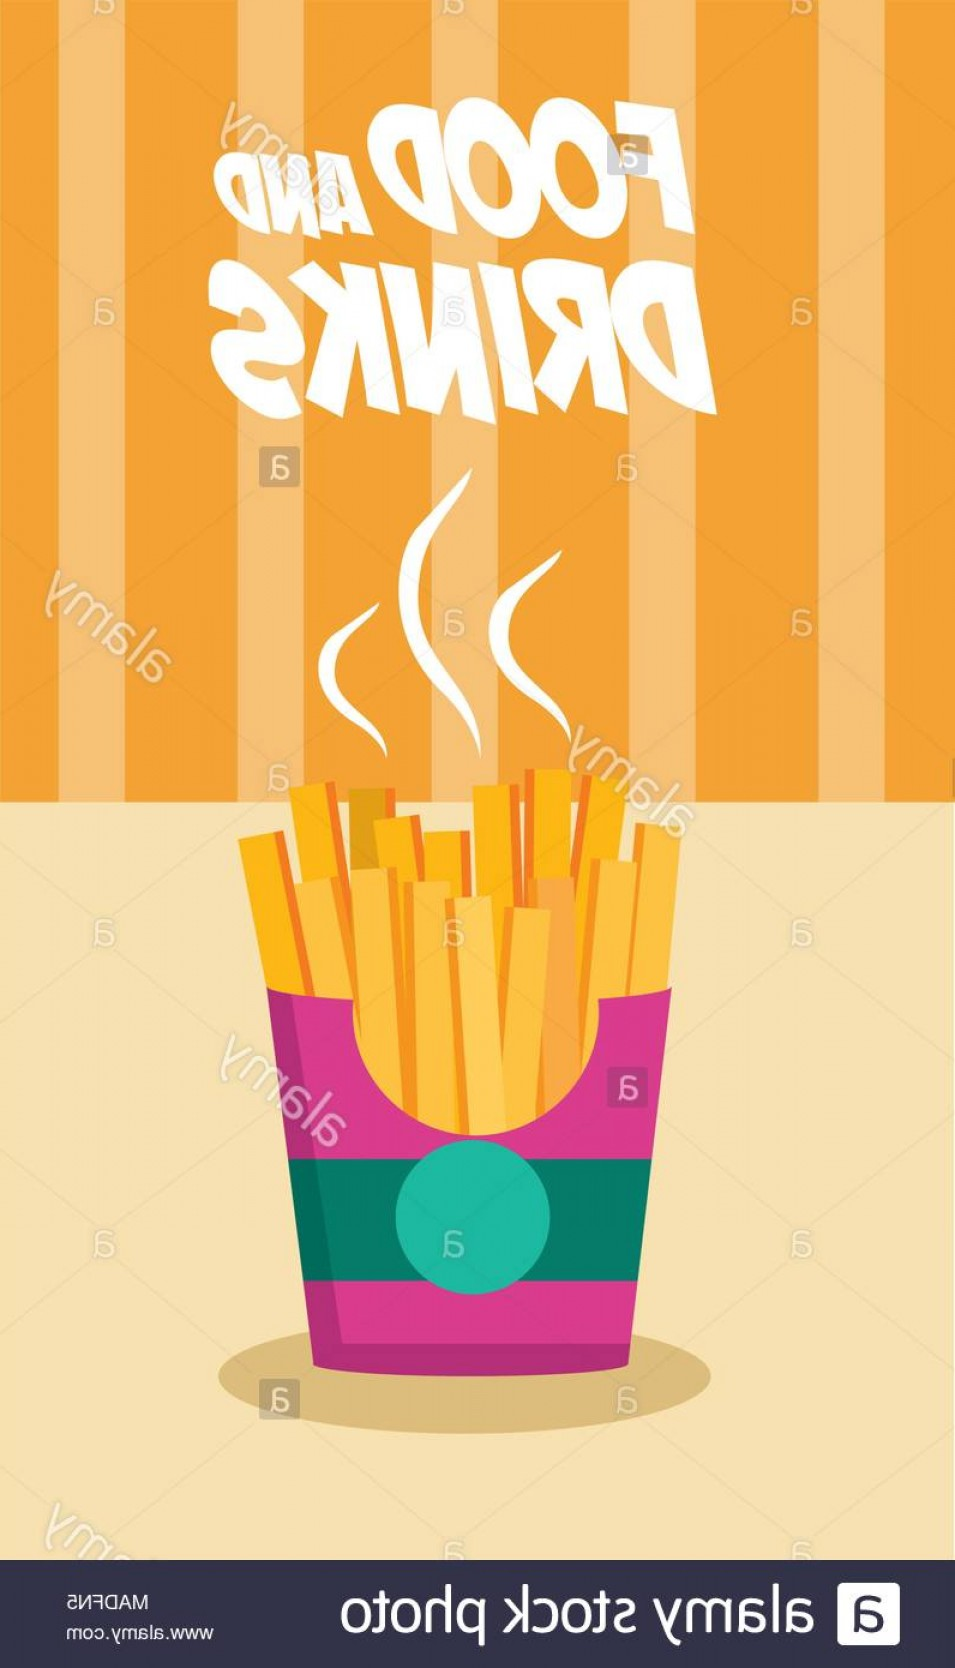 Fries Vector: Delicious French Fries Vector Illustration Graphic Design Image